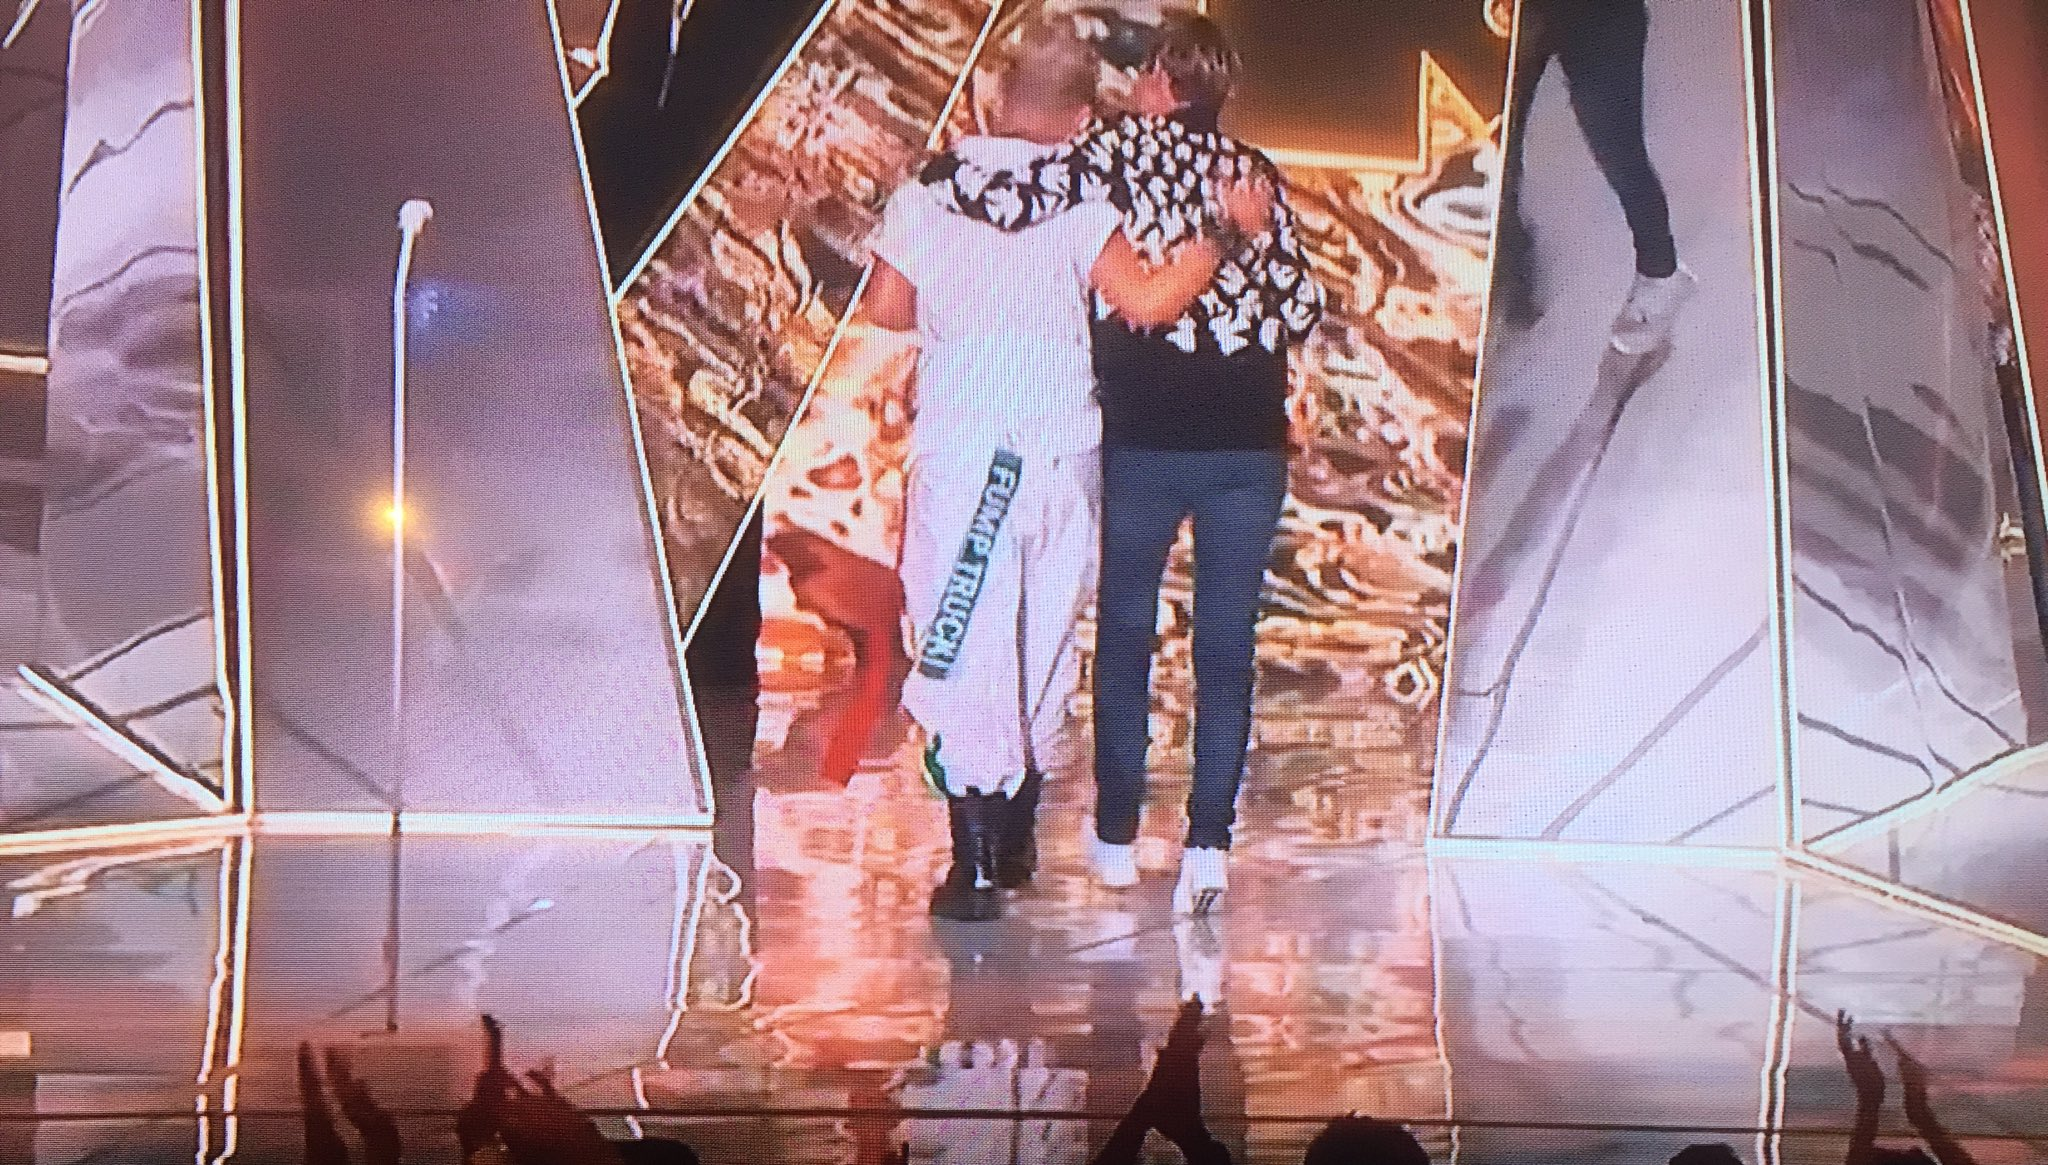 Pink walking off stage with Ellen Degeneres while wearing a 'Fump Truck' tag https://t.co/ROOdtYV3Ga